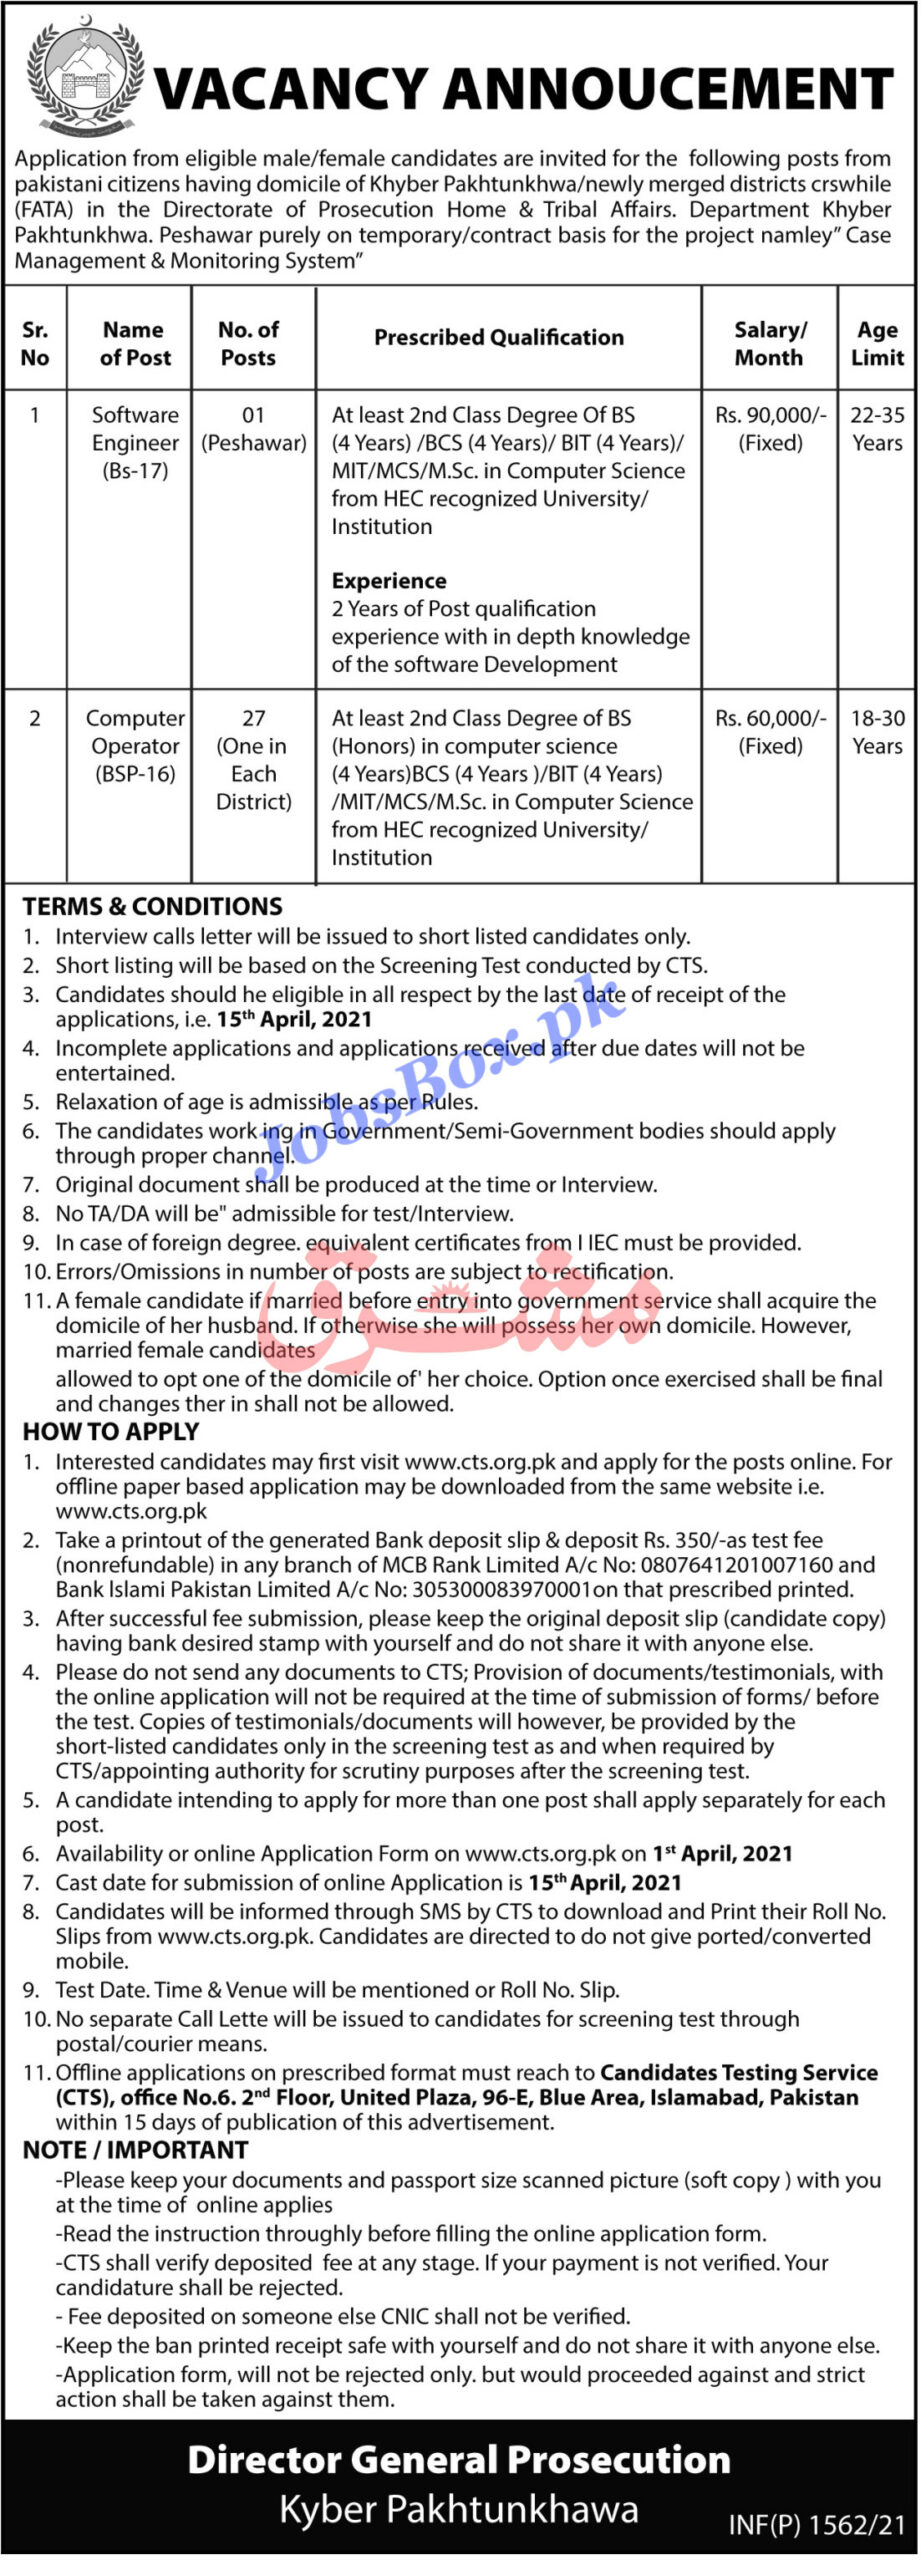 Latest Home and Tribal Affairs Department KPK Jobs 2021 Advertisement